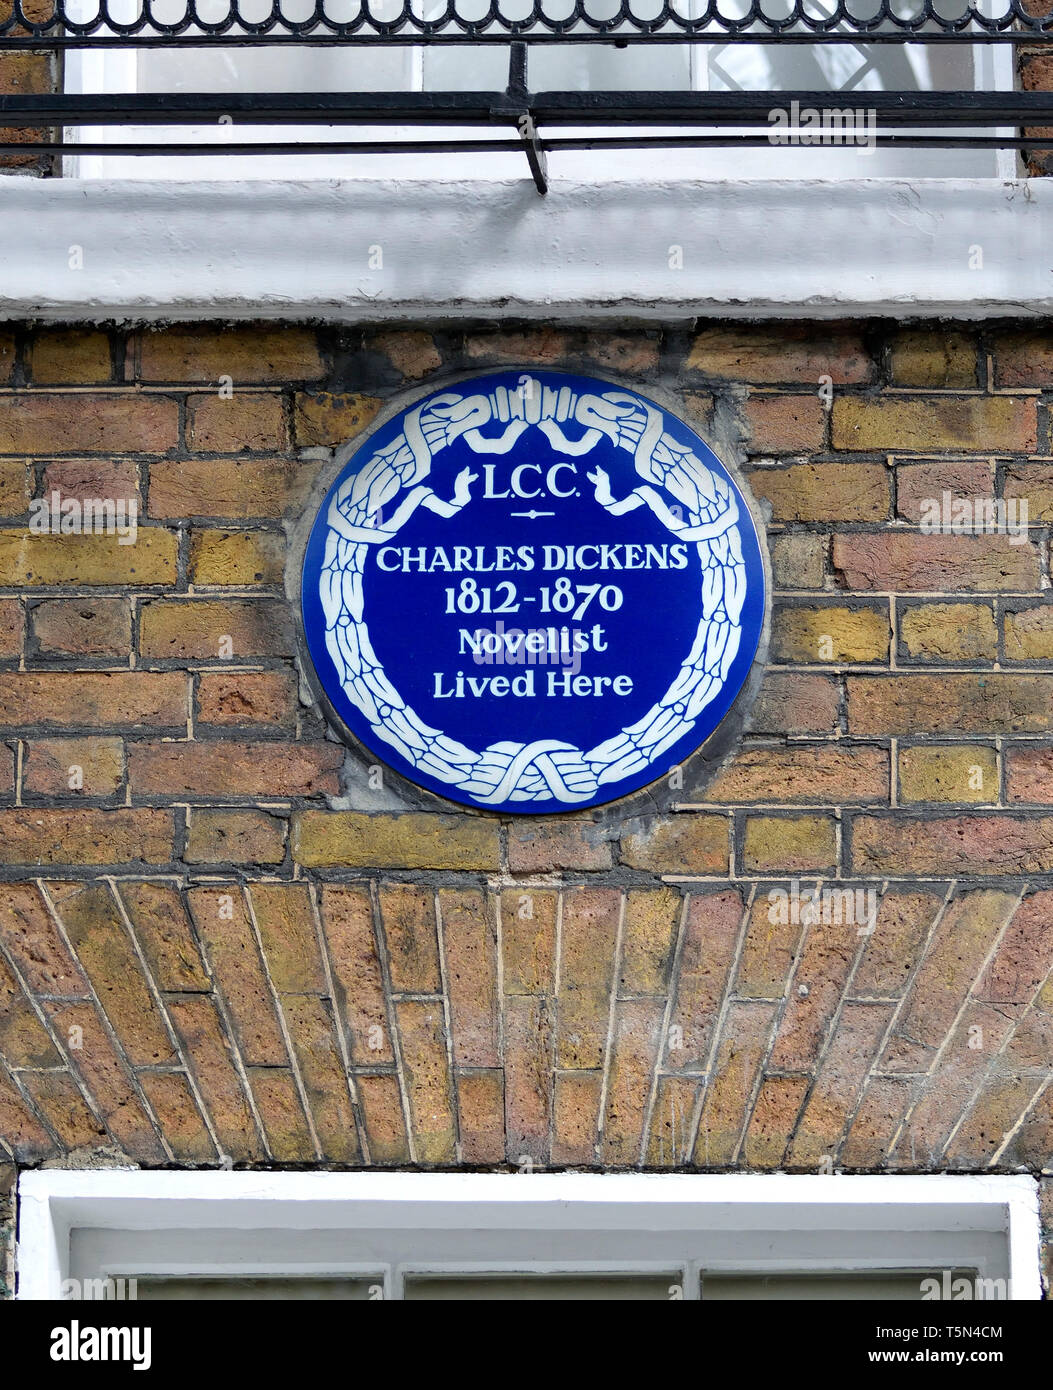 London, England, UK. Commemorative Blue Plaque: Charles Dickens 1812-1870 novelist lived here. 48 Doughty Street, Camden, WC1 - Stock Image